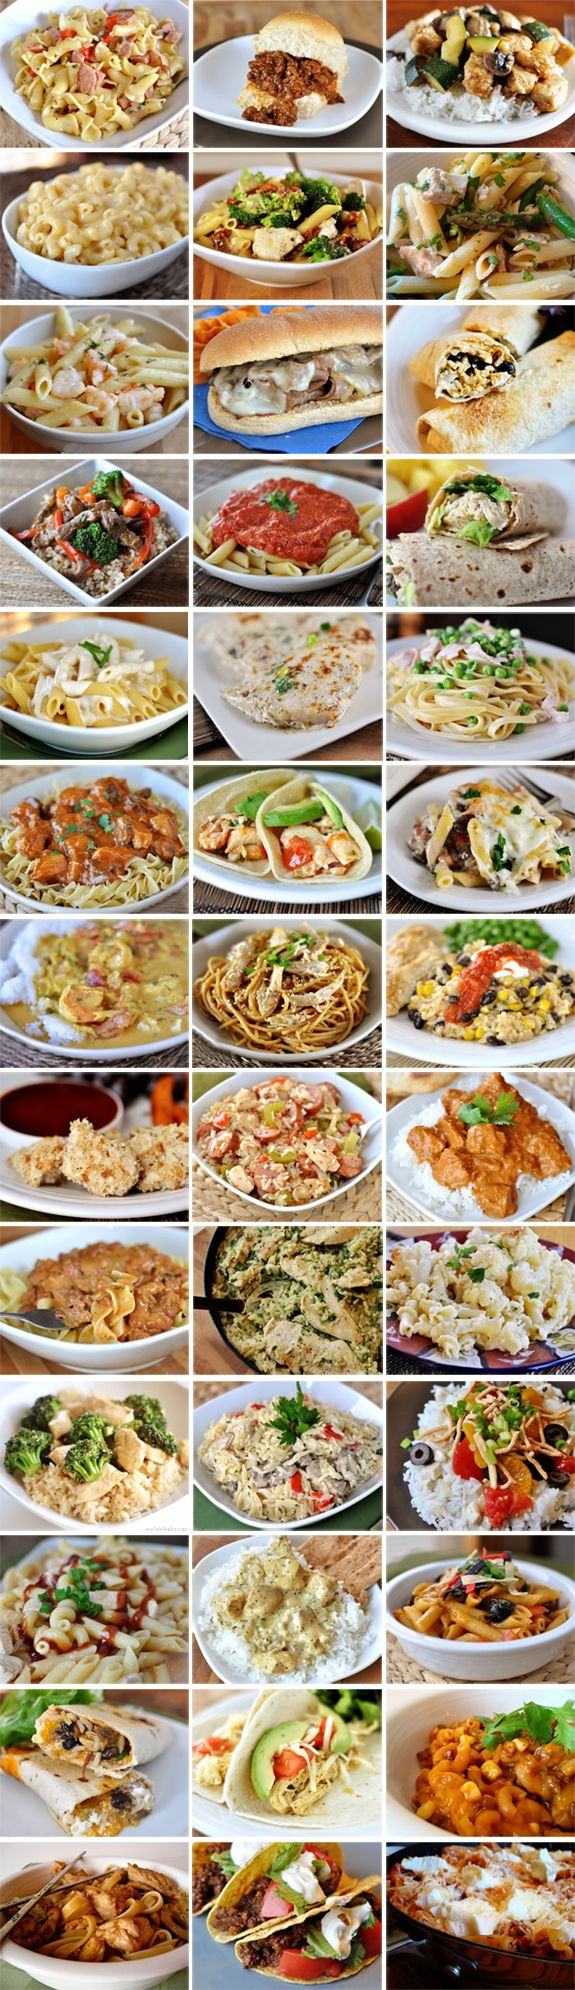 39 Meals to Make in 30-Minutes or Less